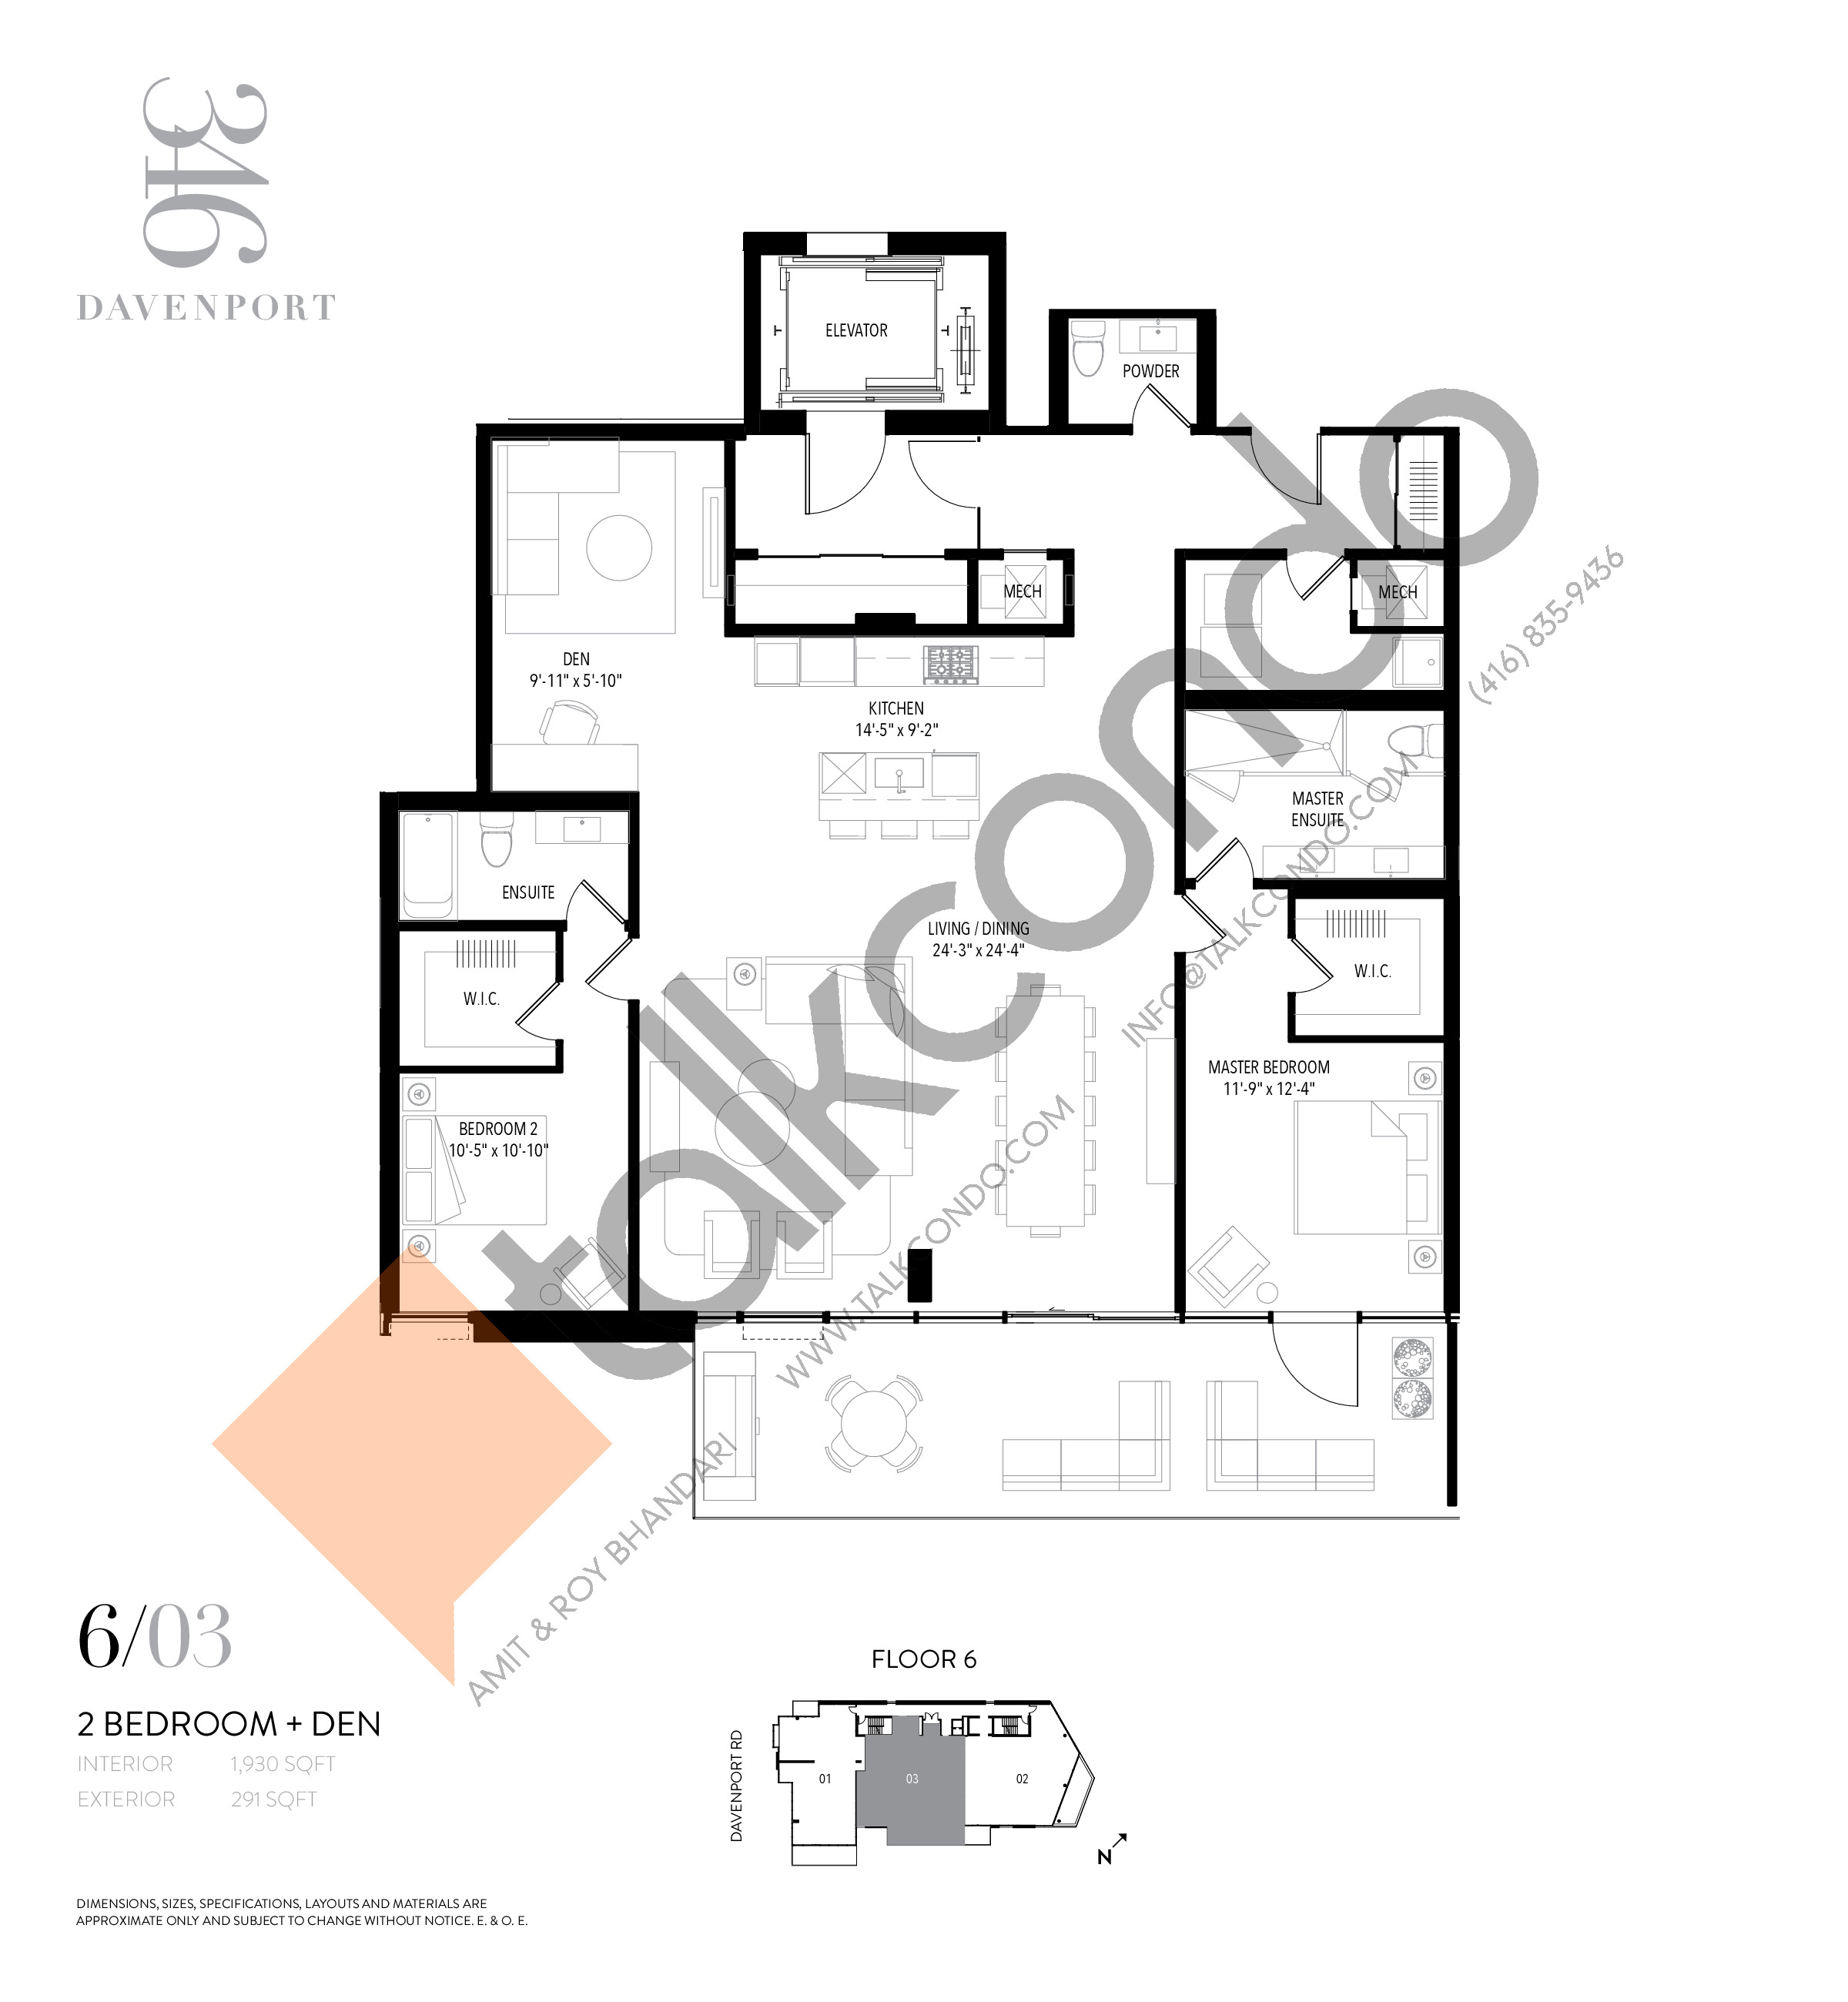 Unit 603 Floor Plan at 346 Davenport Condos - 1930 sq.ft